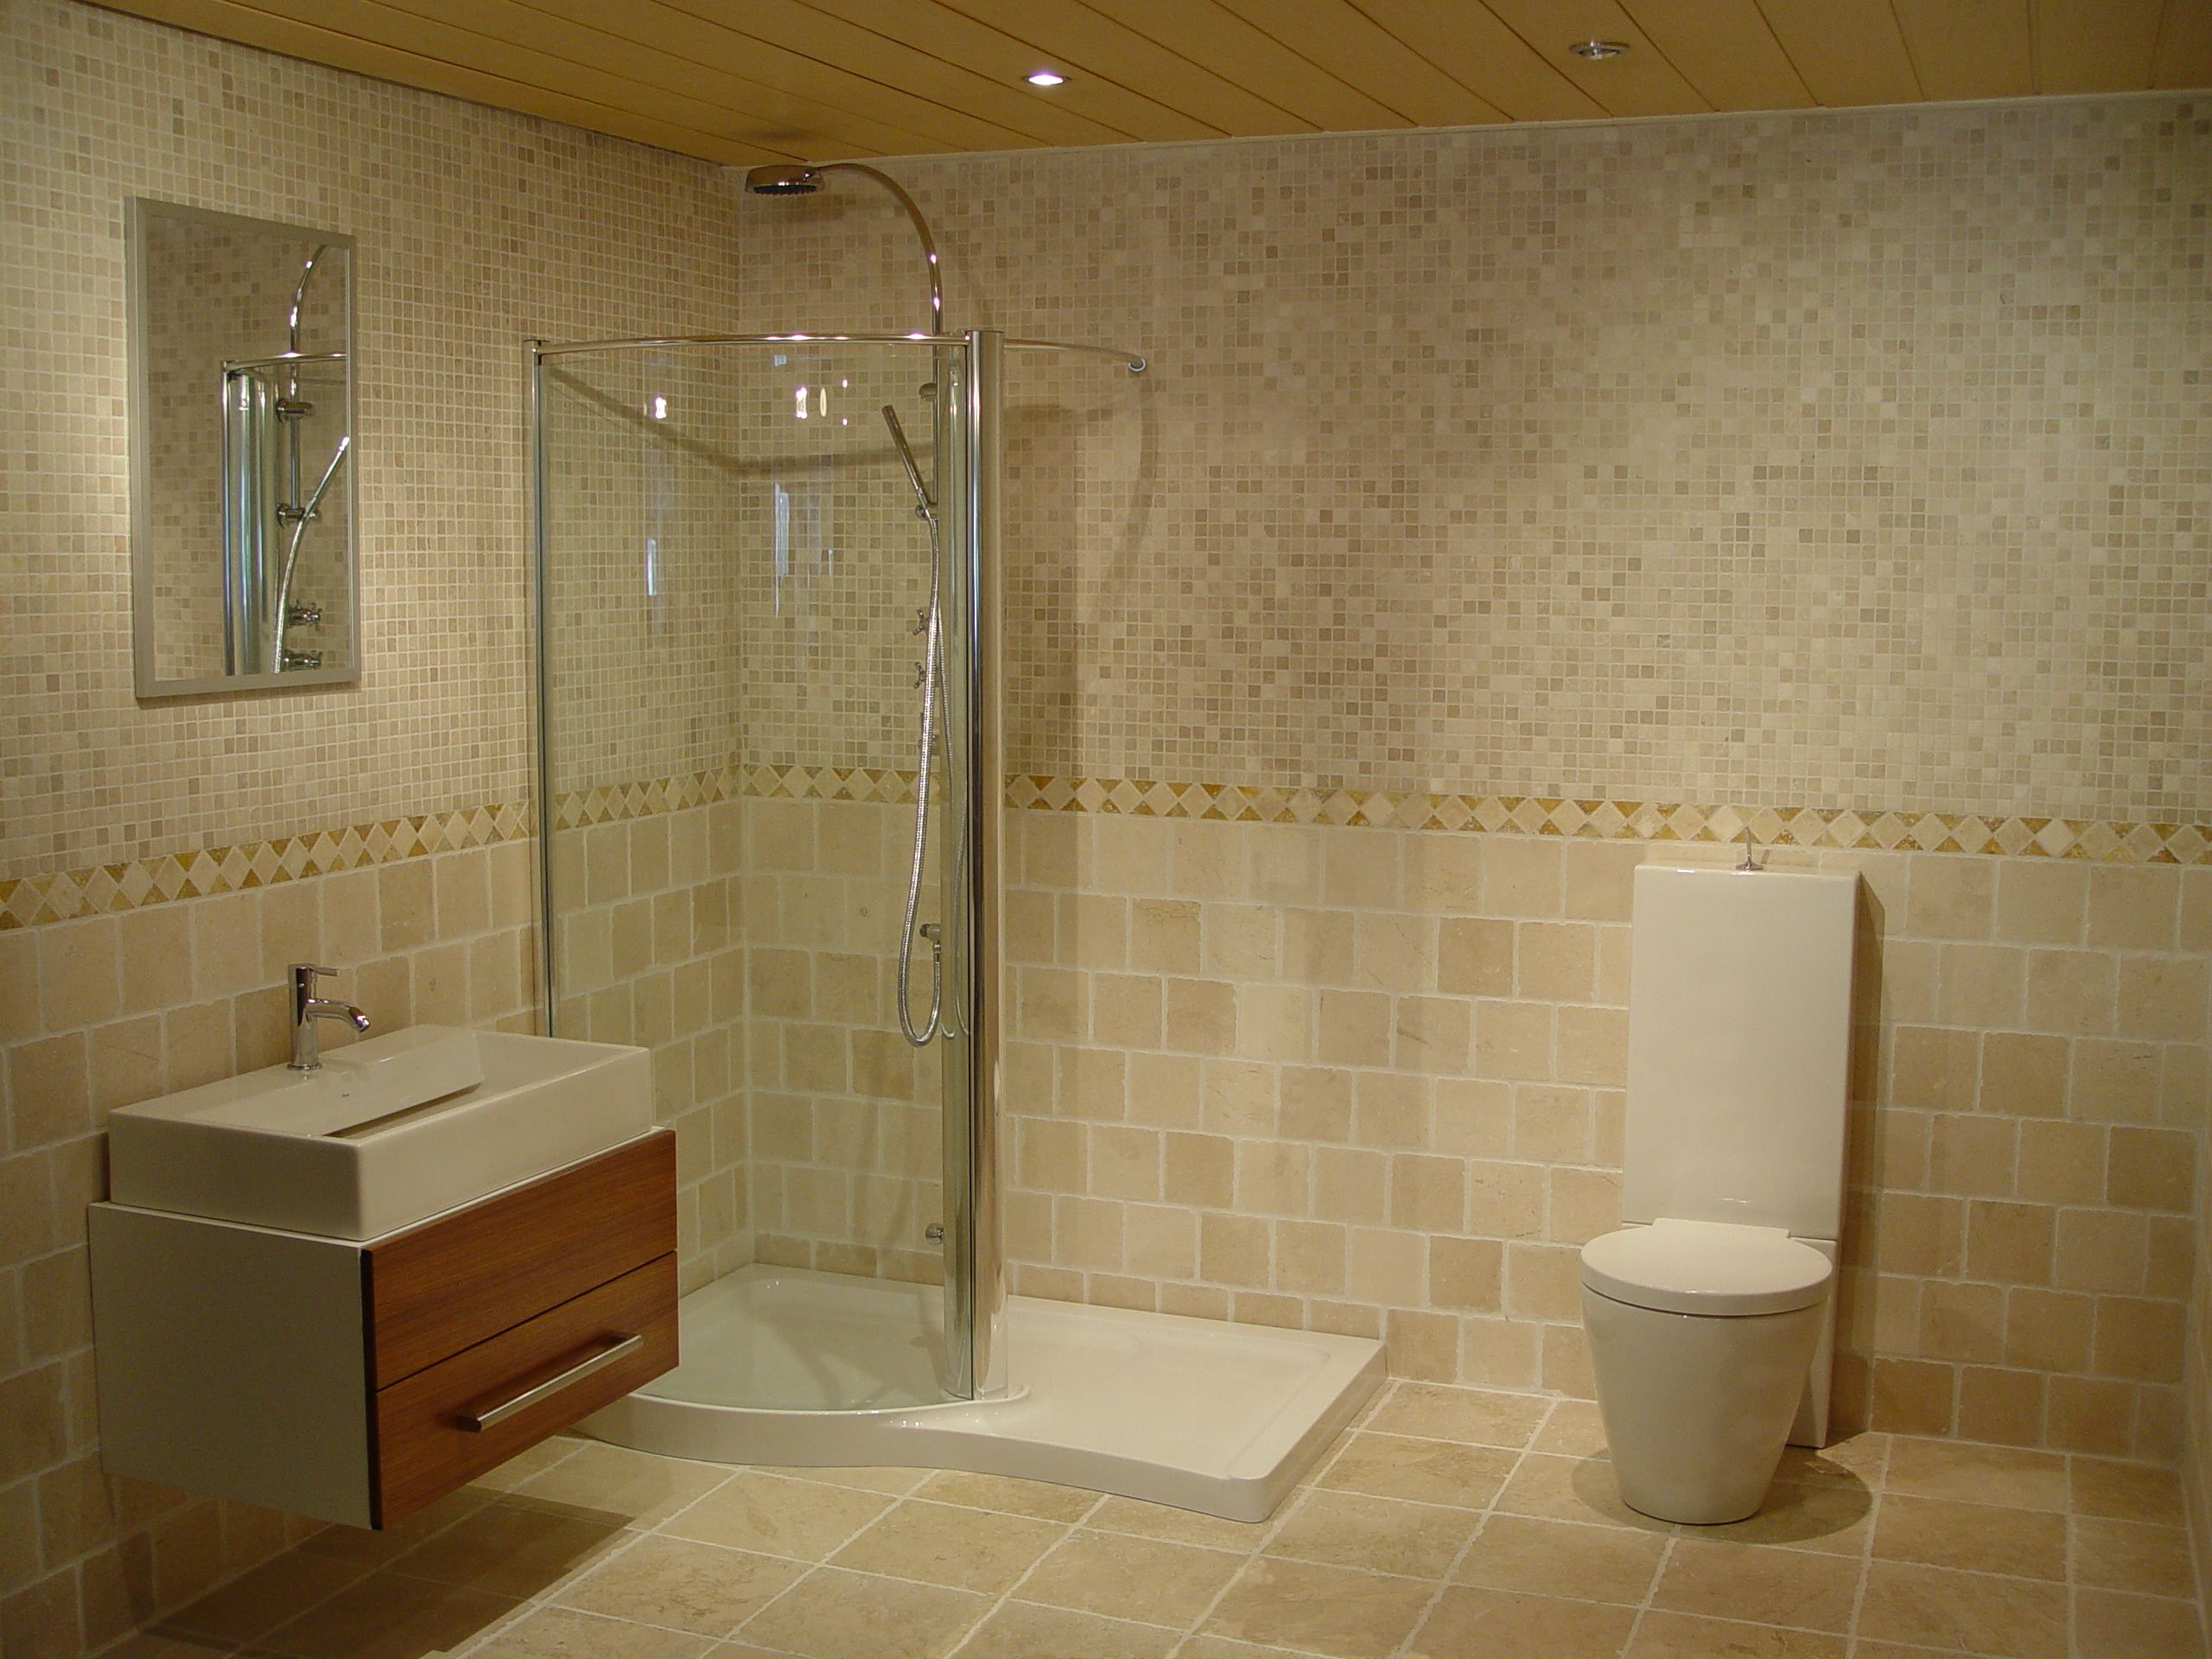 Astonishing Vanity BesideVisible Showering Area Also Lush Bathroom Tile  Designs